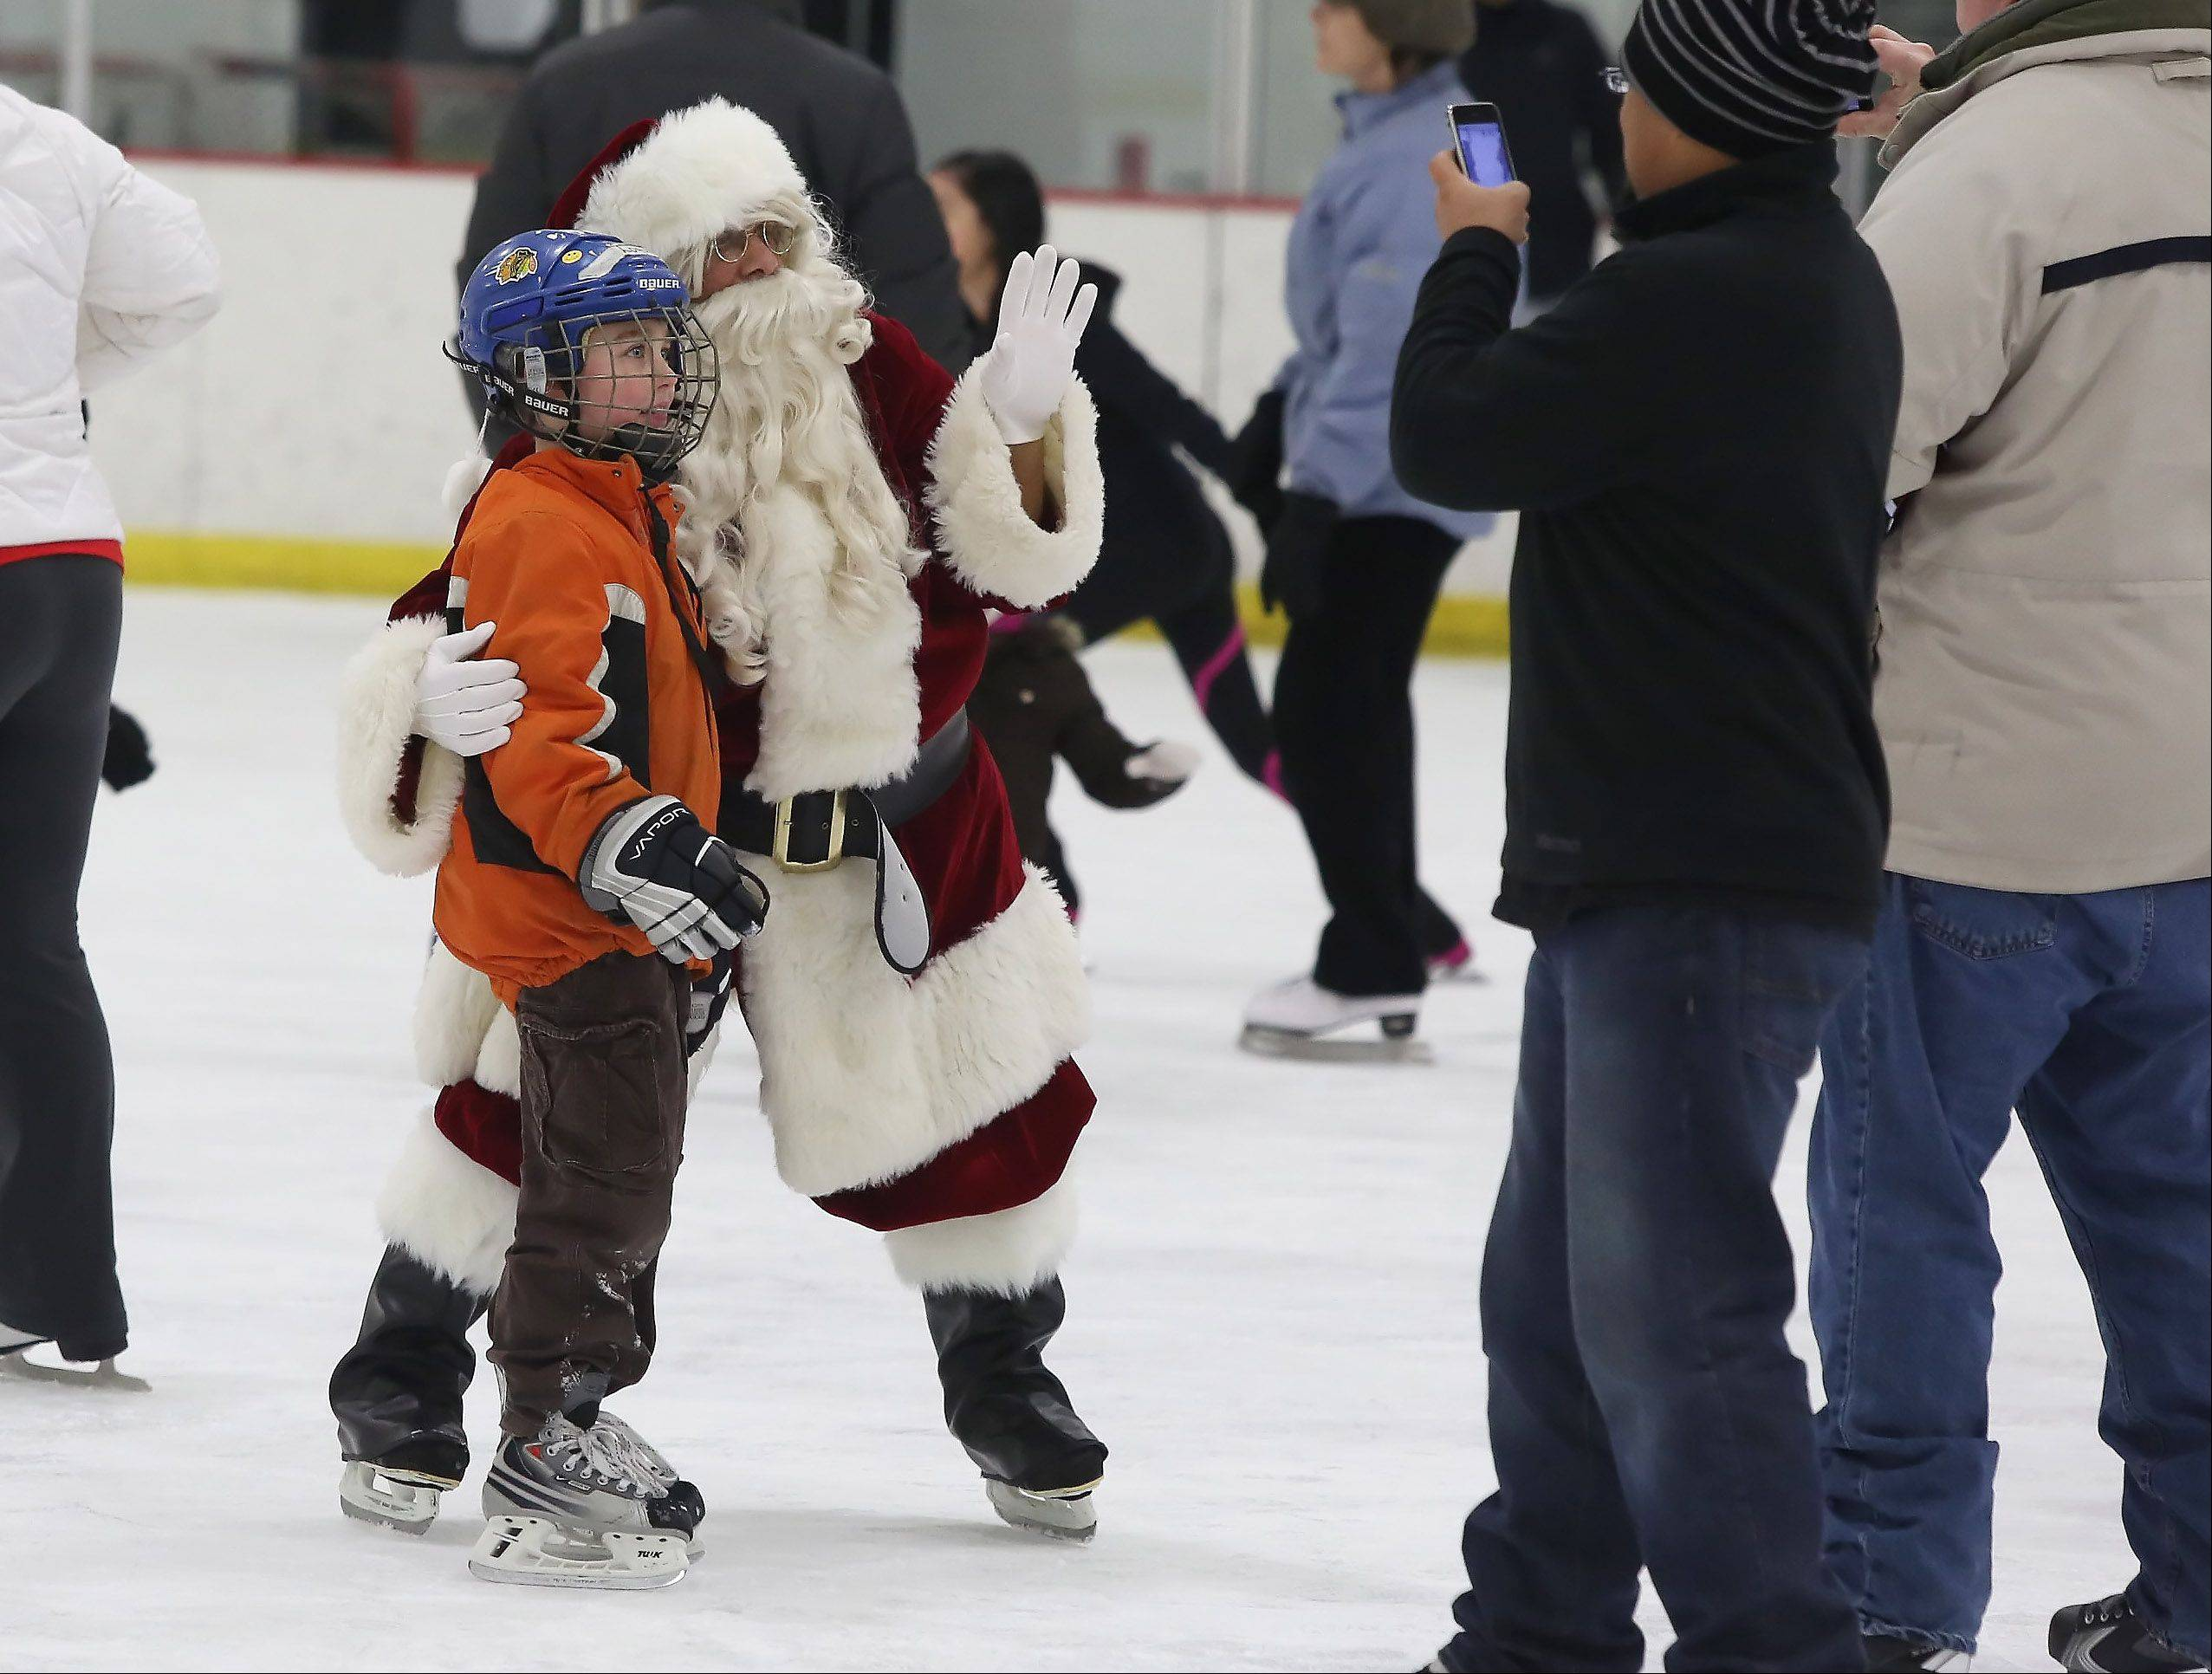 Santa Claus poses for pictures during Skate with Santa Sunday at Triphahn Ice Arena in Hoffman Estates. Families enjoyed open skate as they skated with Mr. and Mrs. Claus as well as Frosty the Snowman.